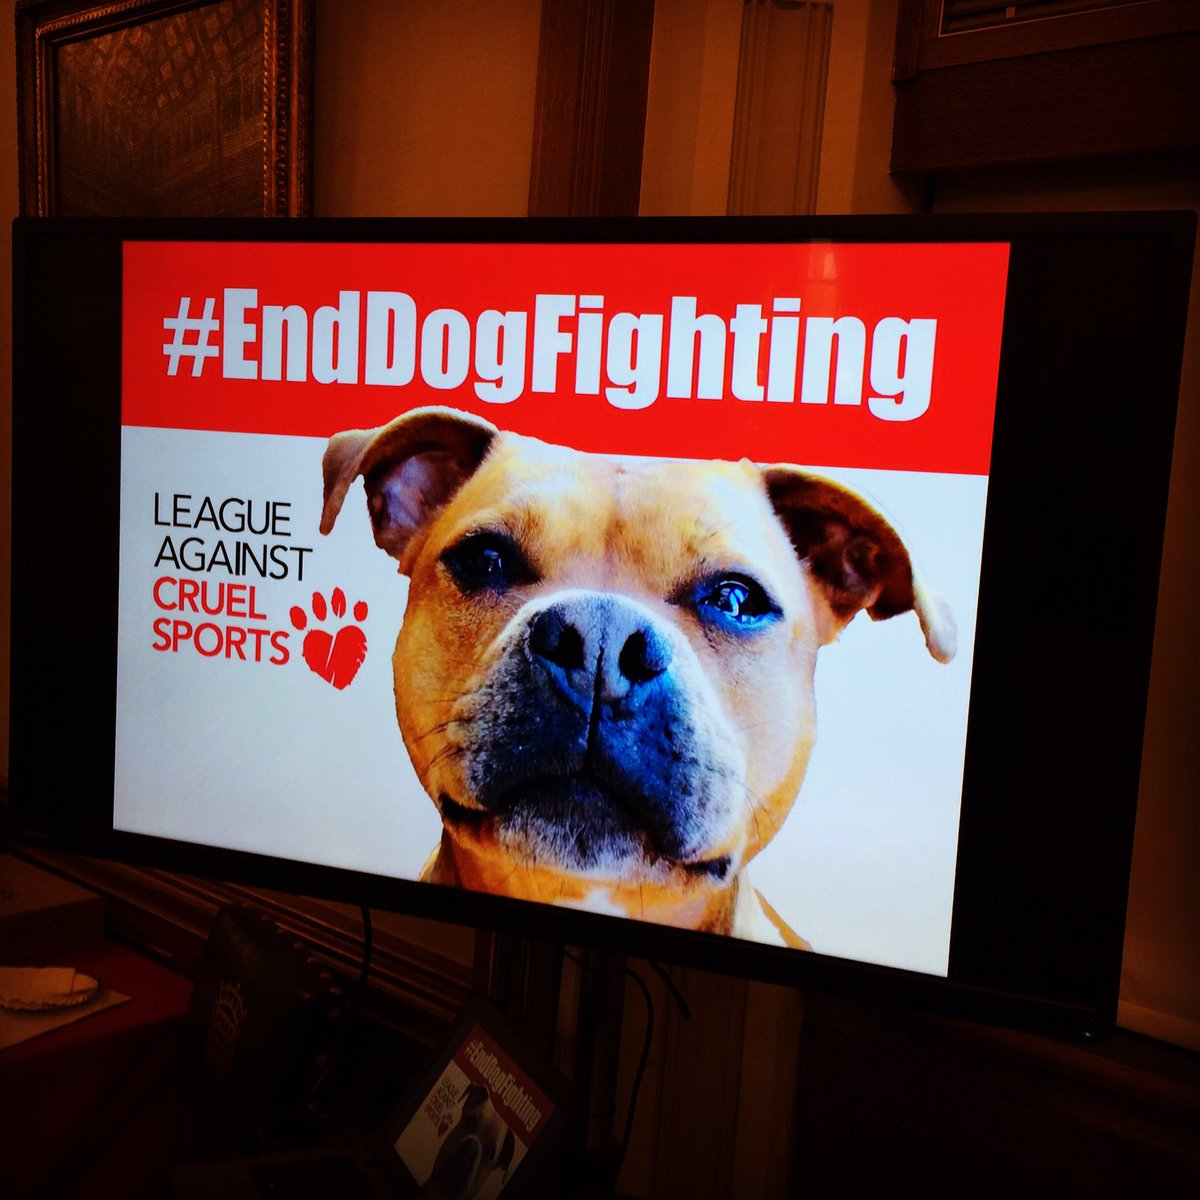 Very privileged to be at the #housesofparliment today to discuss how to #EndDogFighting Cc @rickygervais https://t.co/tc5t9wuBsx